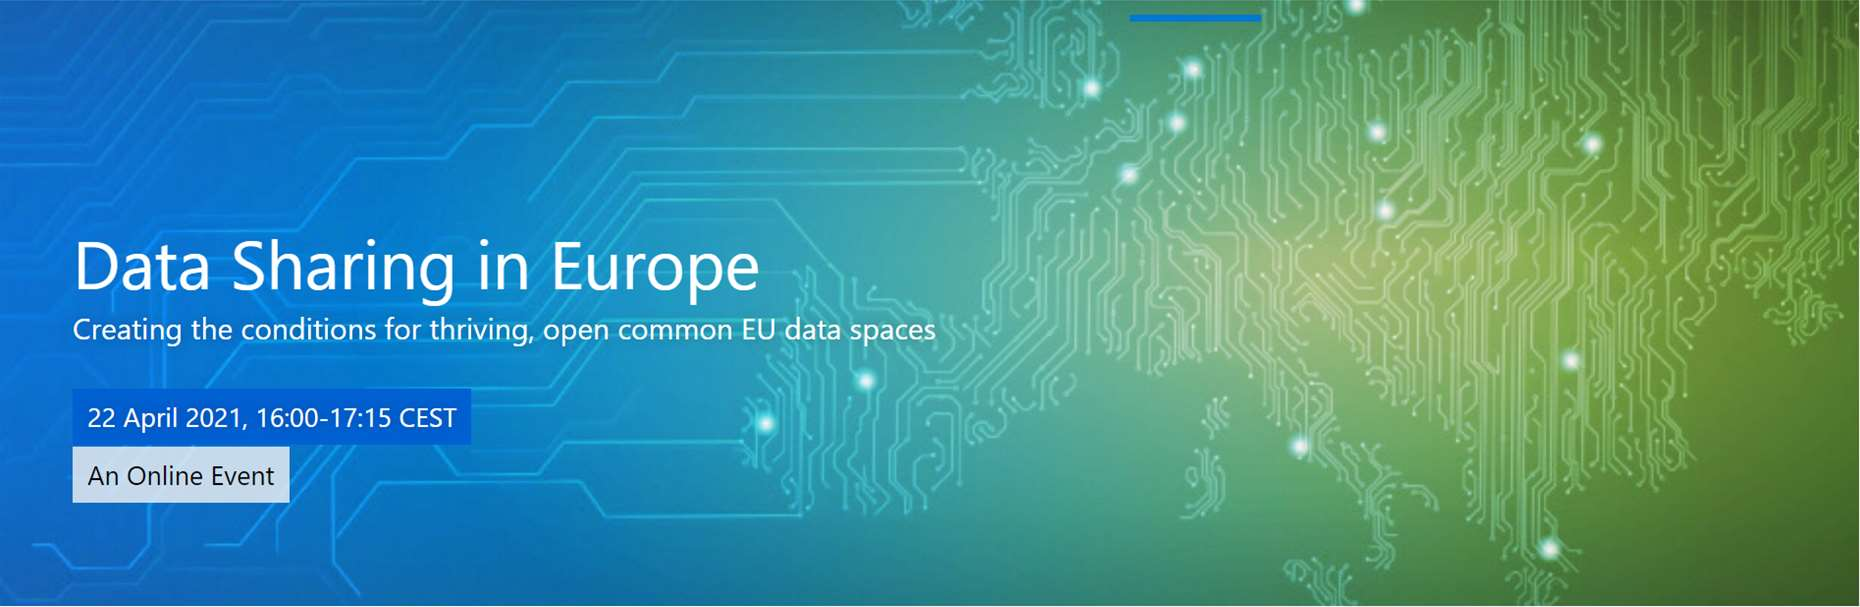 Data sharing in europe